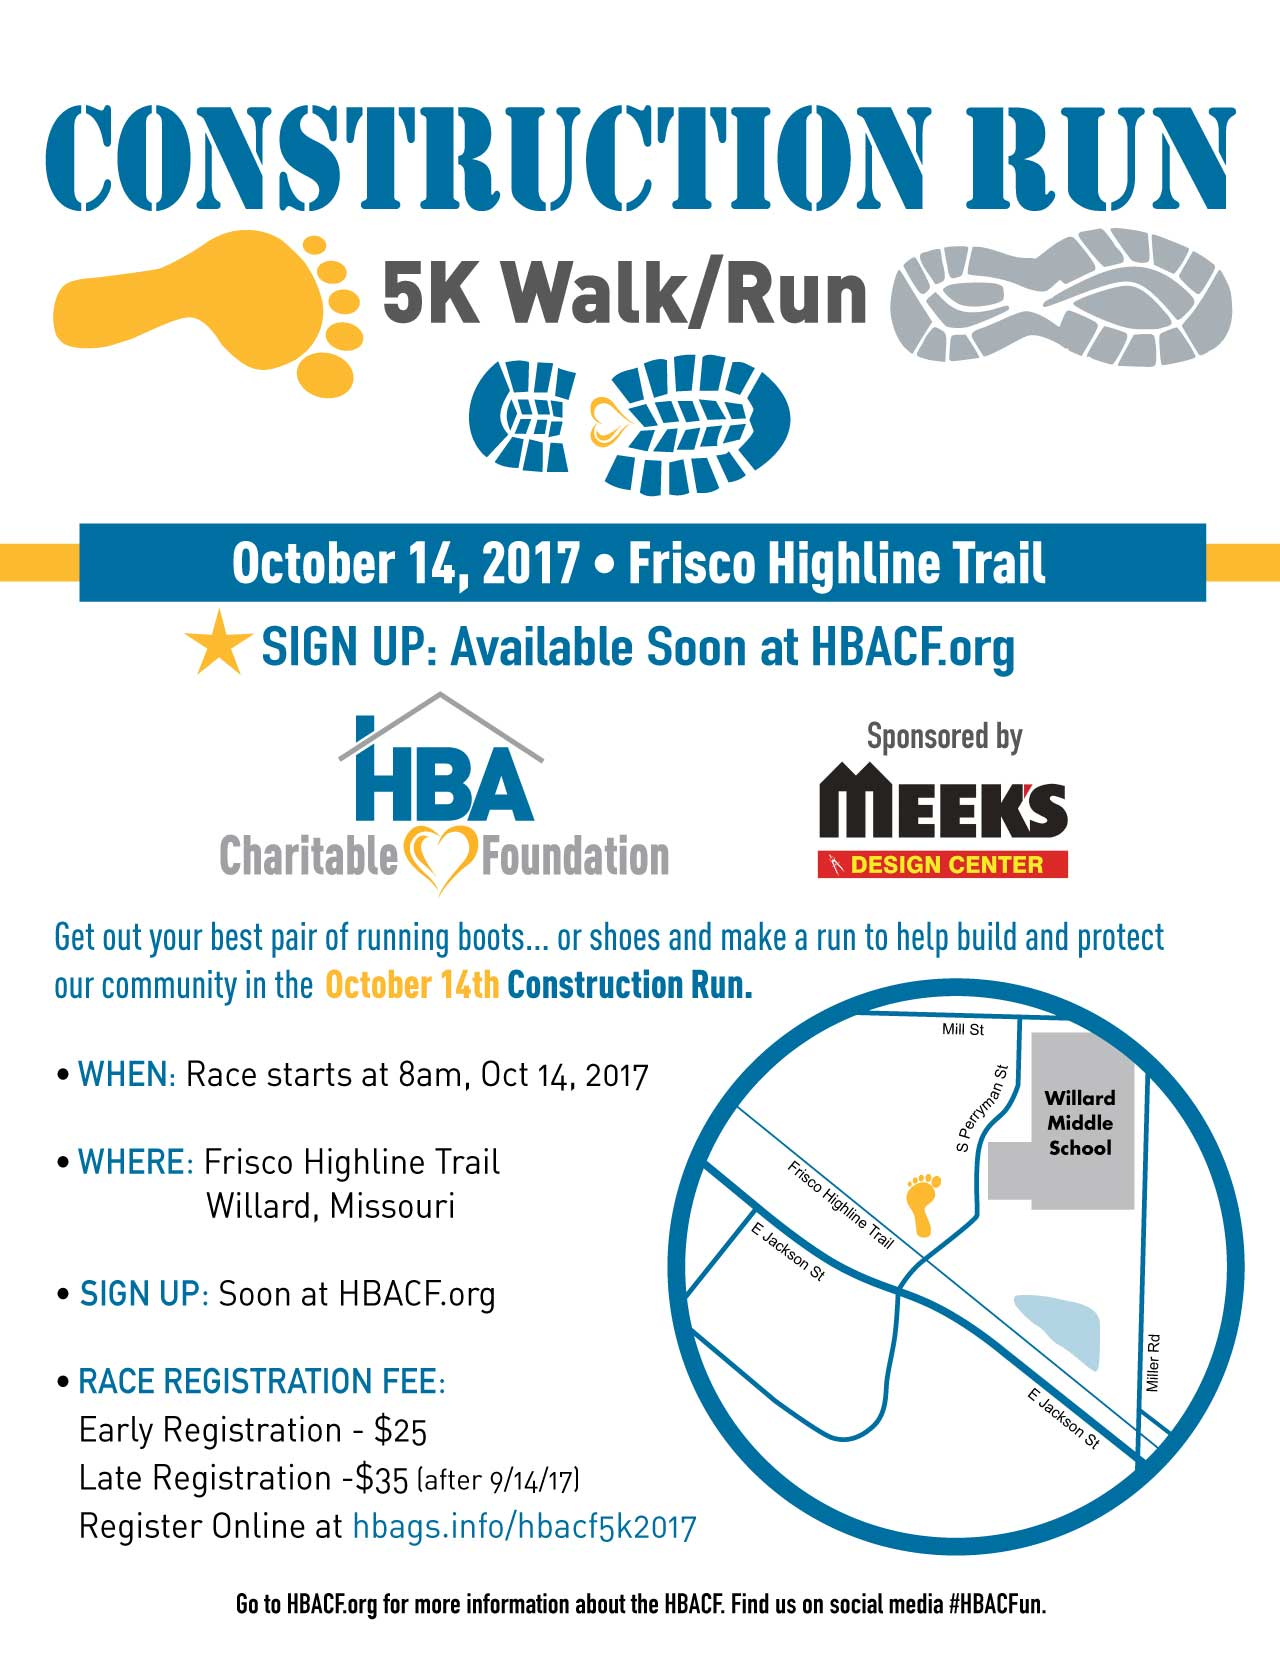 HBACF Construction Run 2017